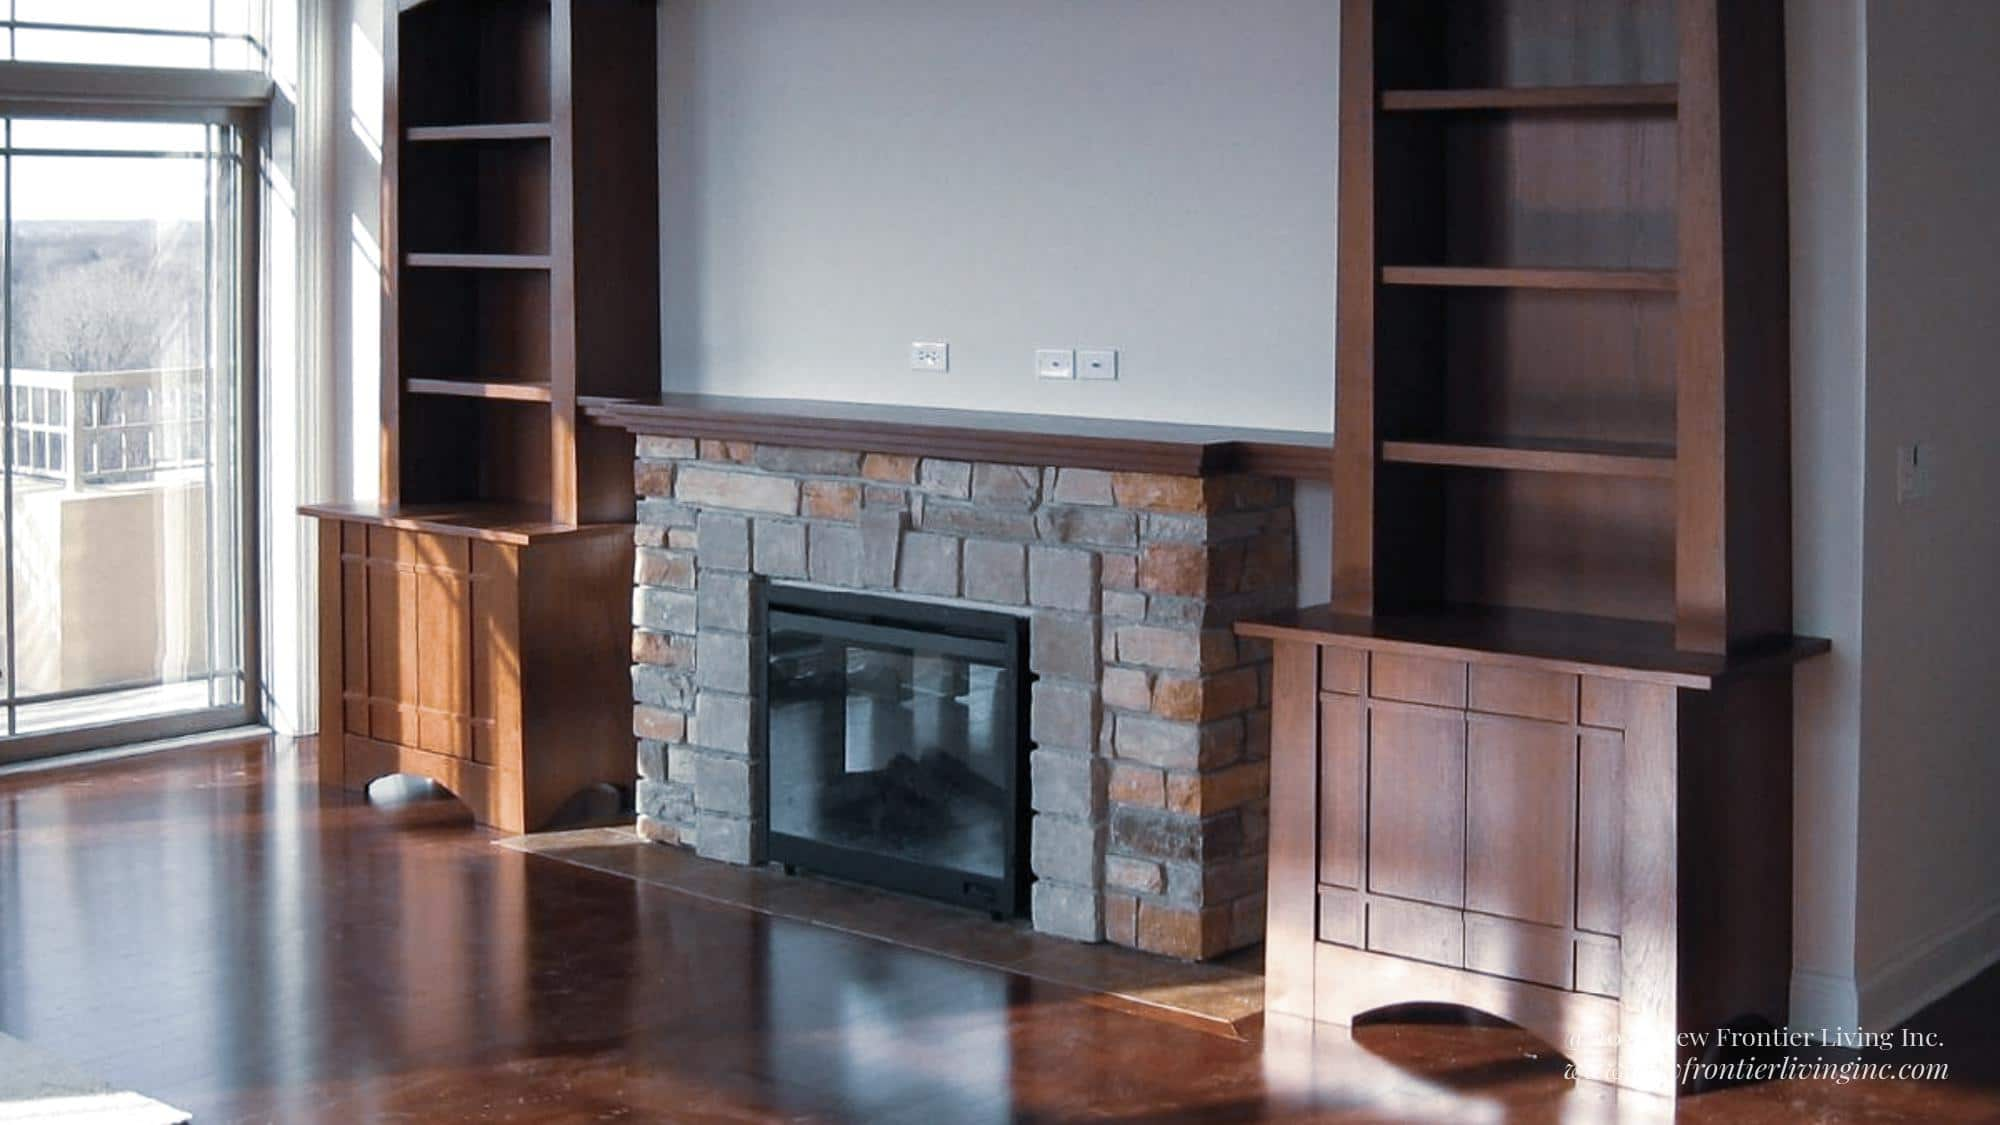 Stone brick fireplace with bookshelves on the sides and TV mount above